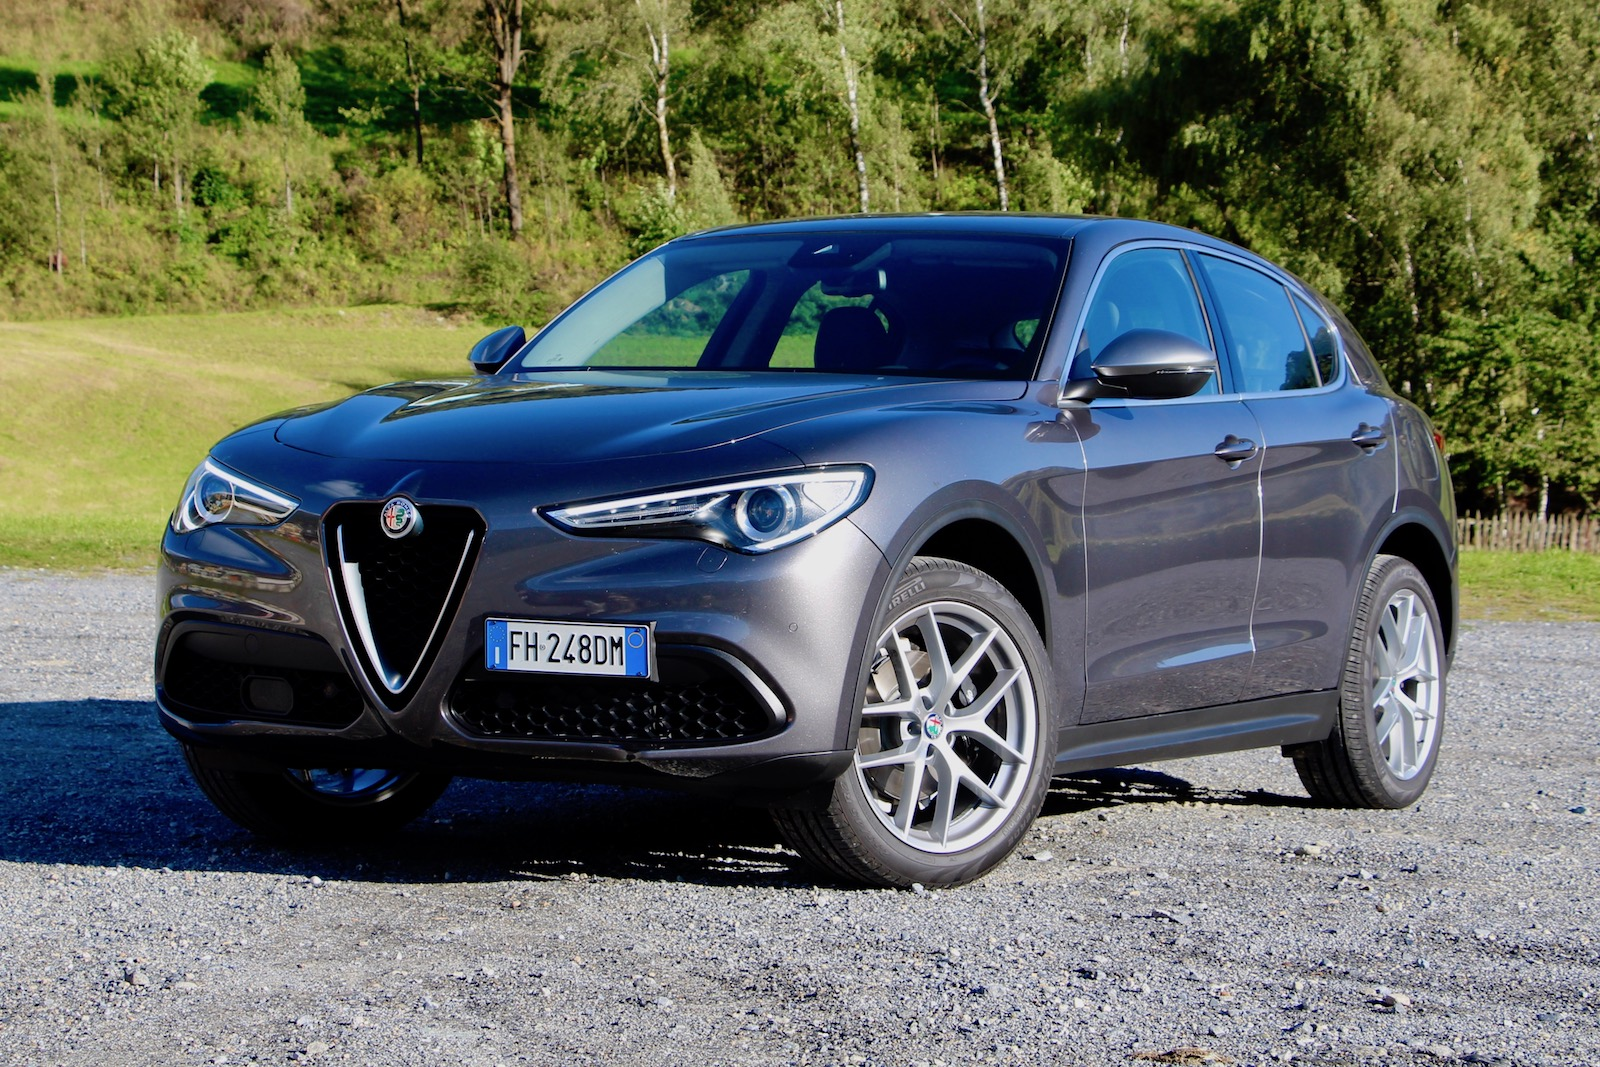 Used Car Loan >> 2018 Alfa Romeo Stelvio First Drive Review - AutoGuide.com